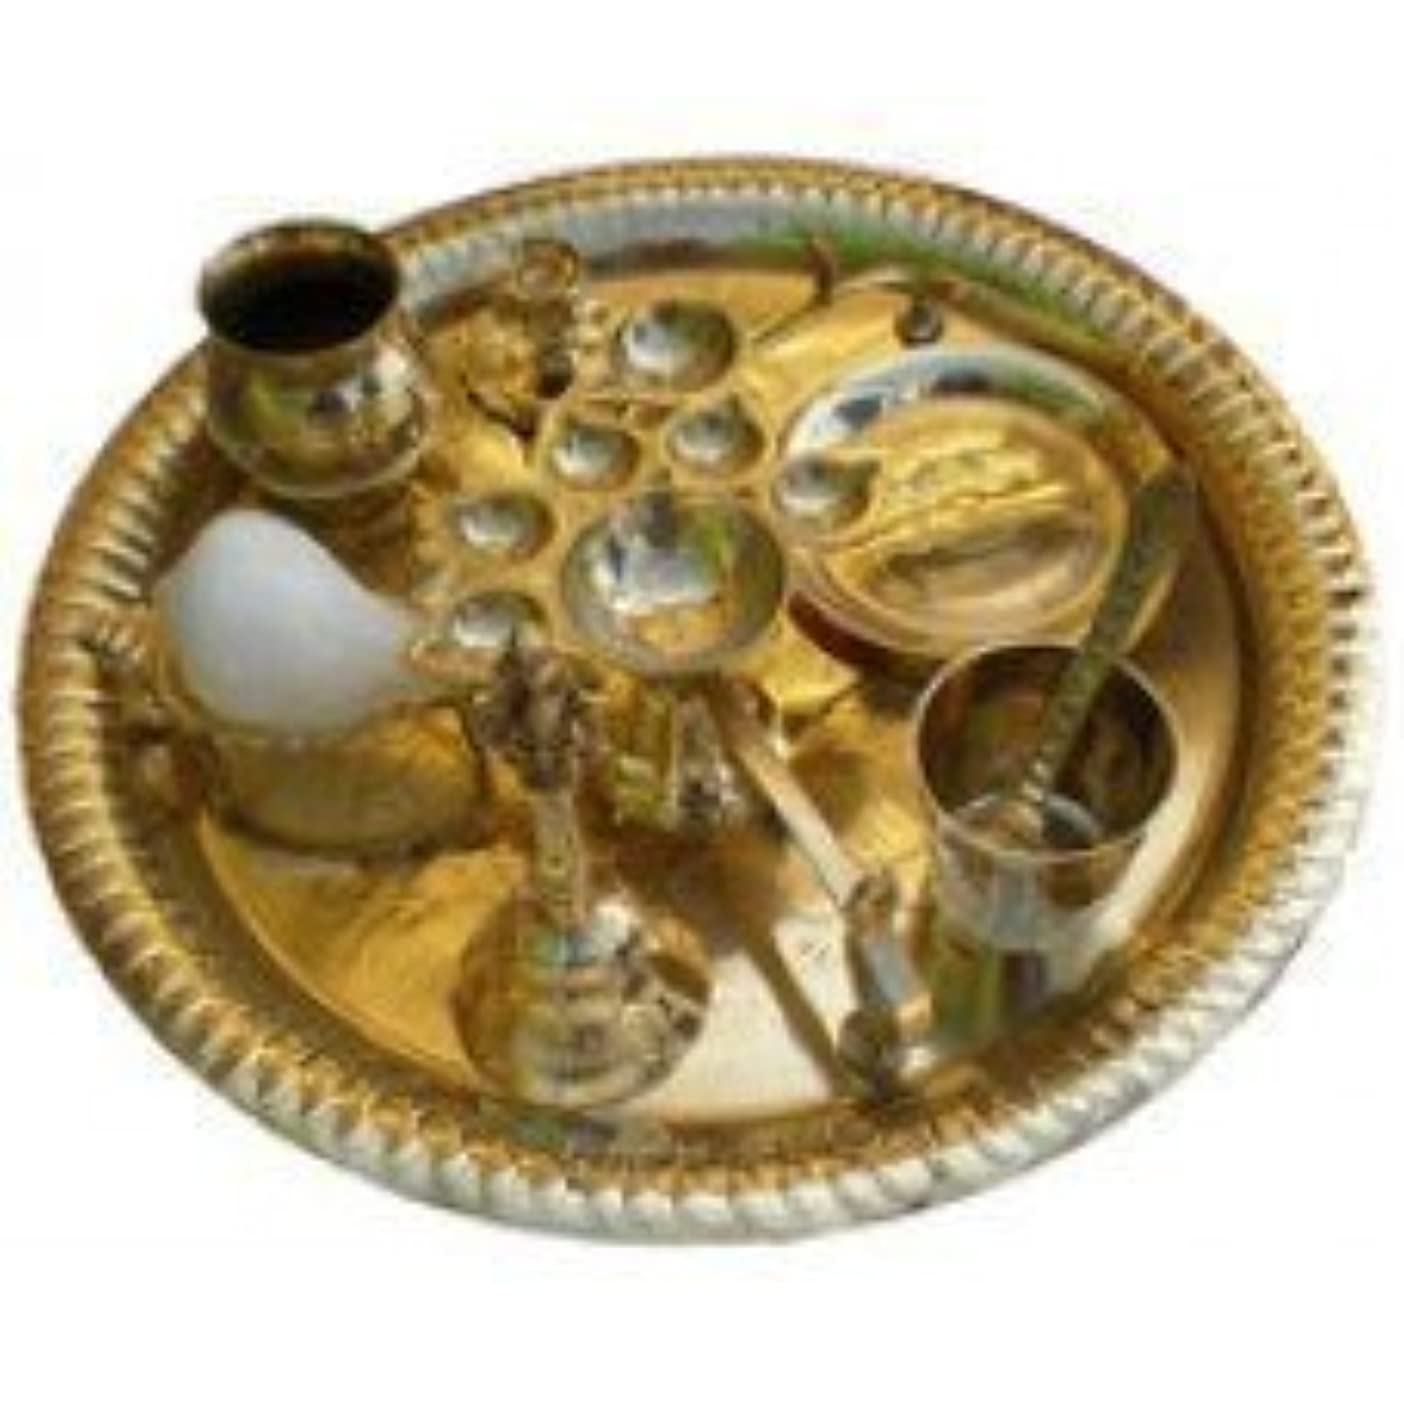 地雷原怠感架空のAarti Set (tray with Bell, Incense Holder, Flower Tray, Conch, Ghee Lamps)